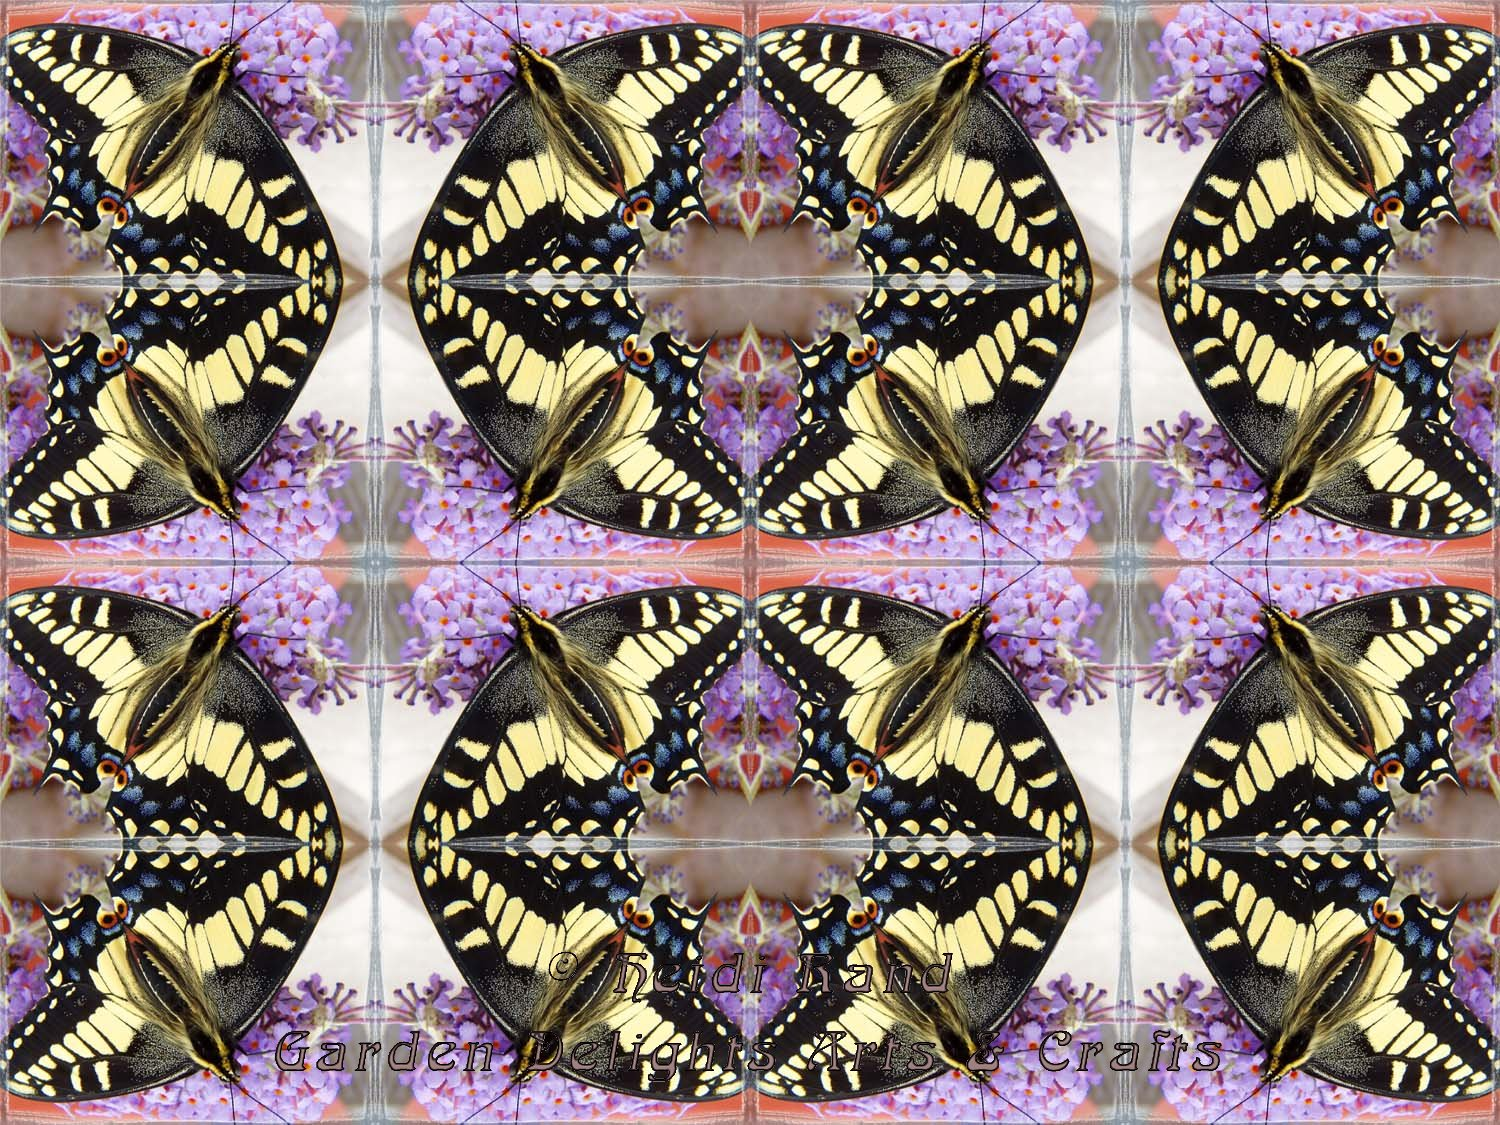 Swallowtail butterfly with buddleia kaleidoscope